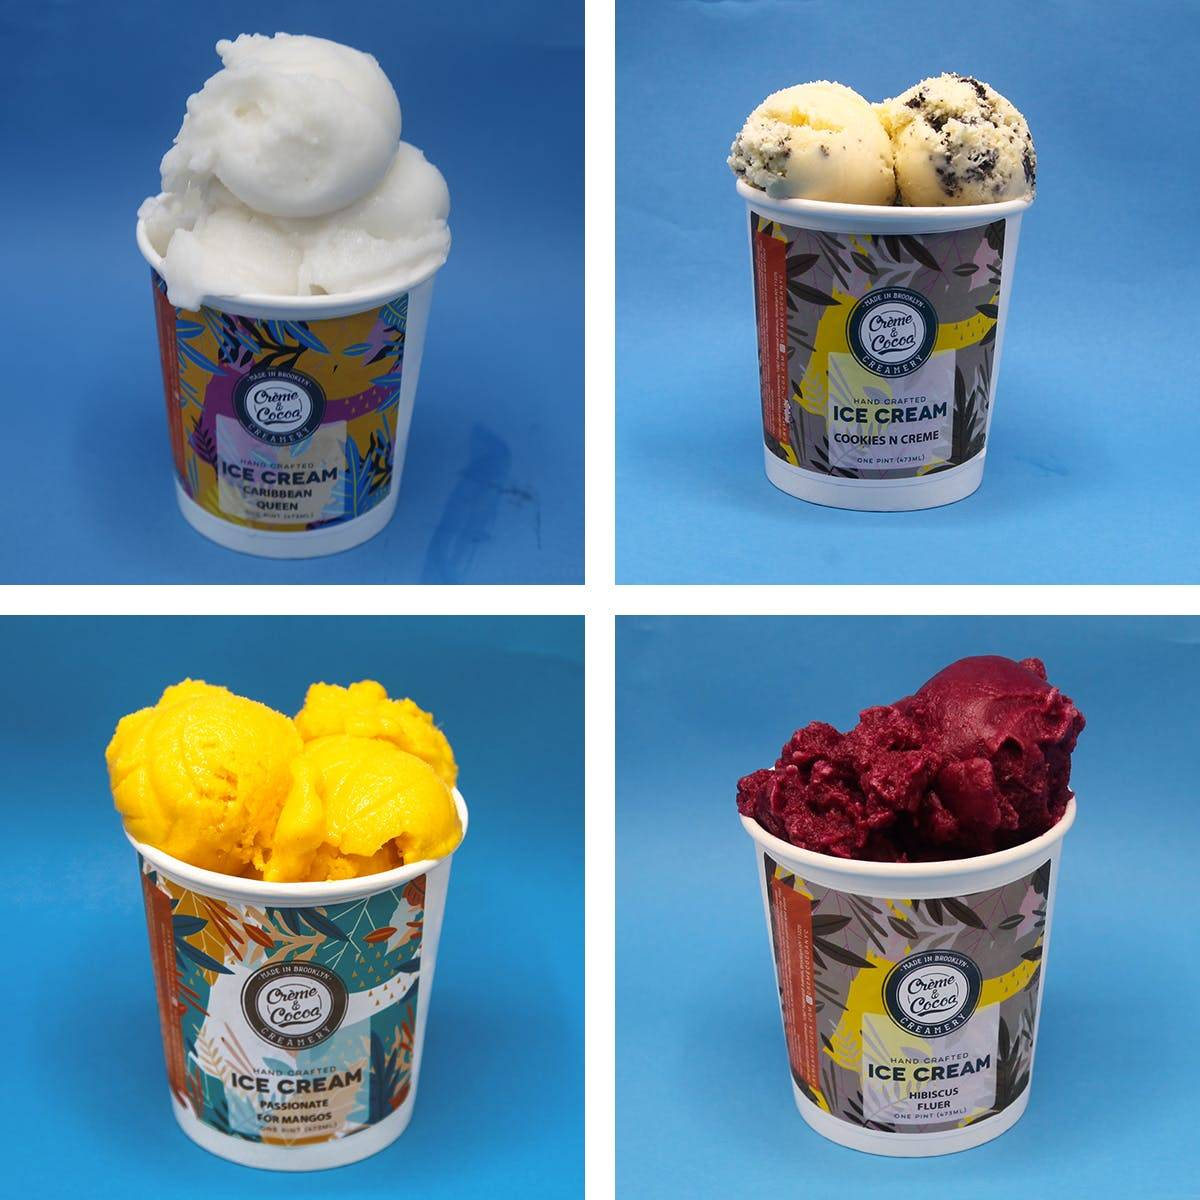 Creme and Cocoa Creamery - Ice Cream Best Sellers - 4 Pints